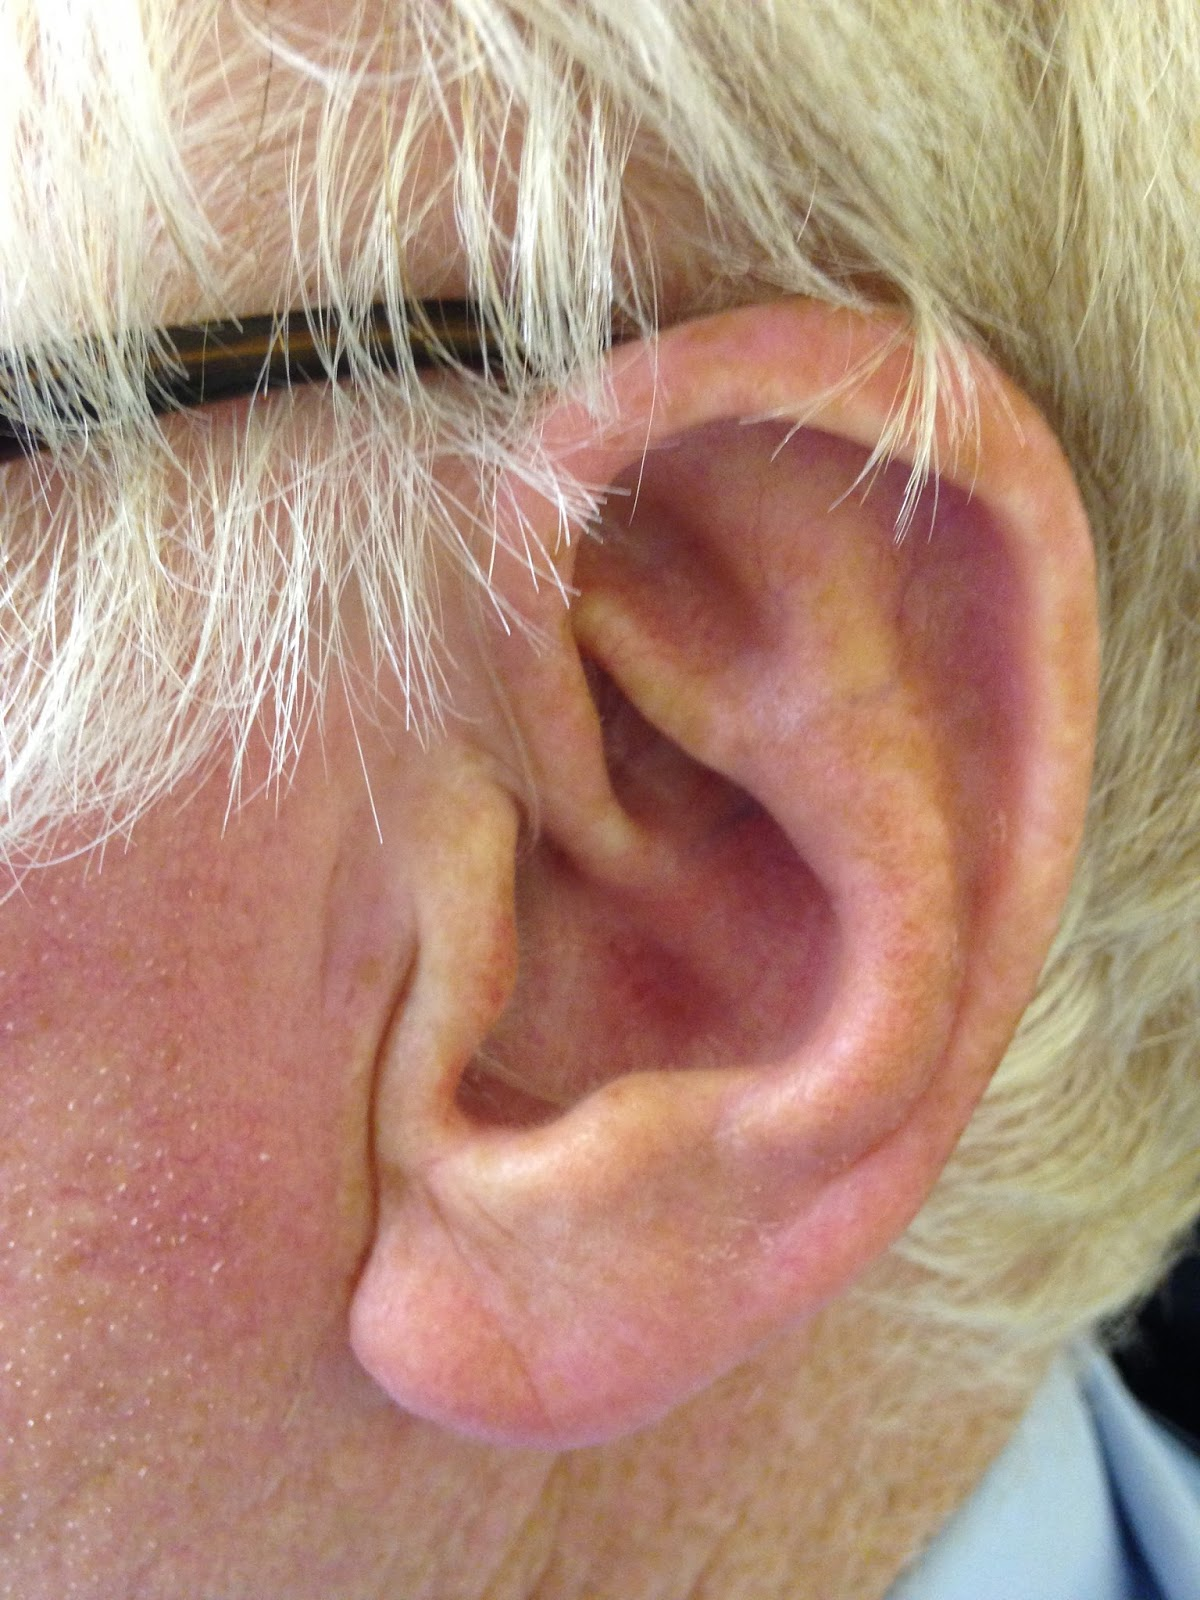 Wear Your Receiver In The Ear Hearing Aid Correctly Good